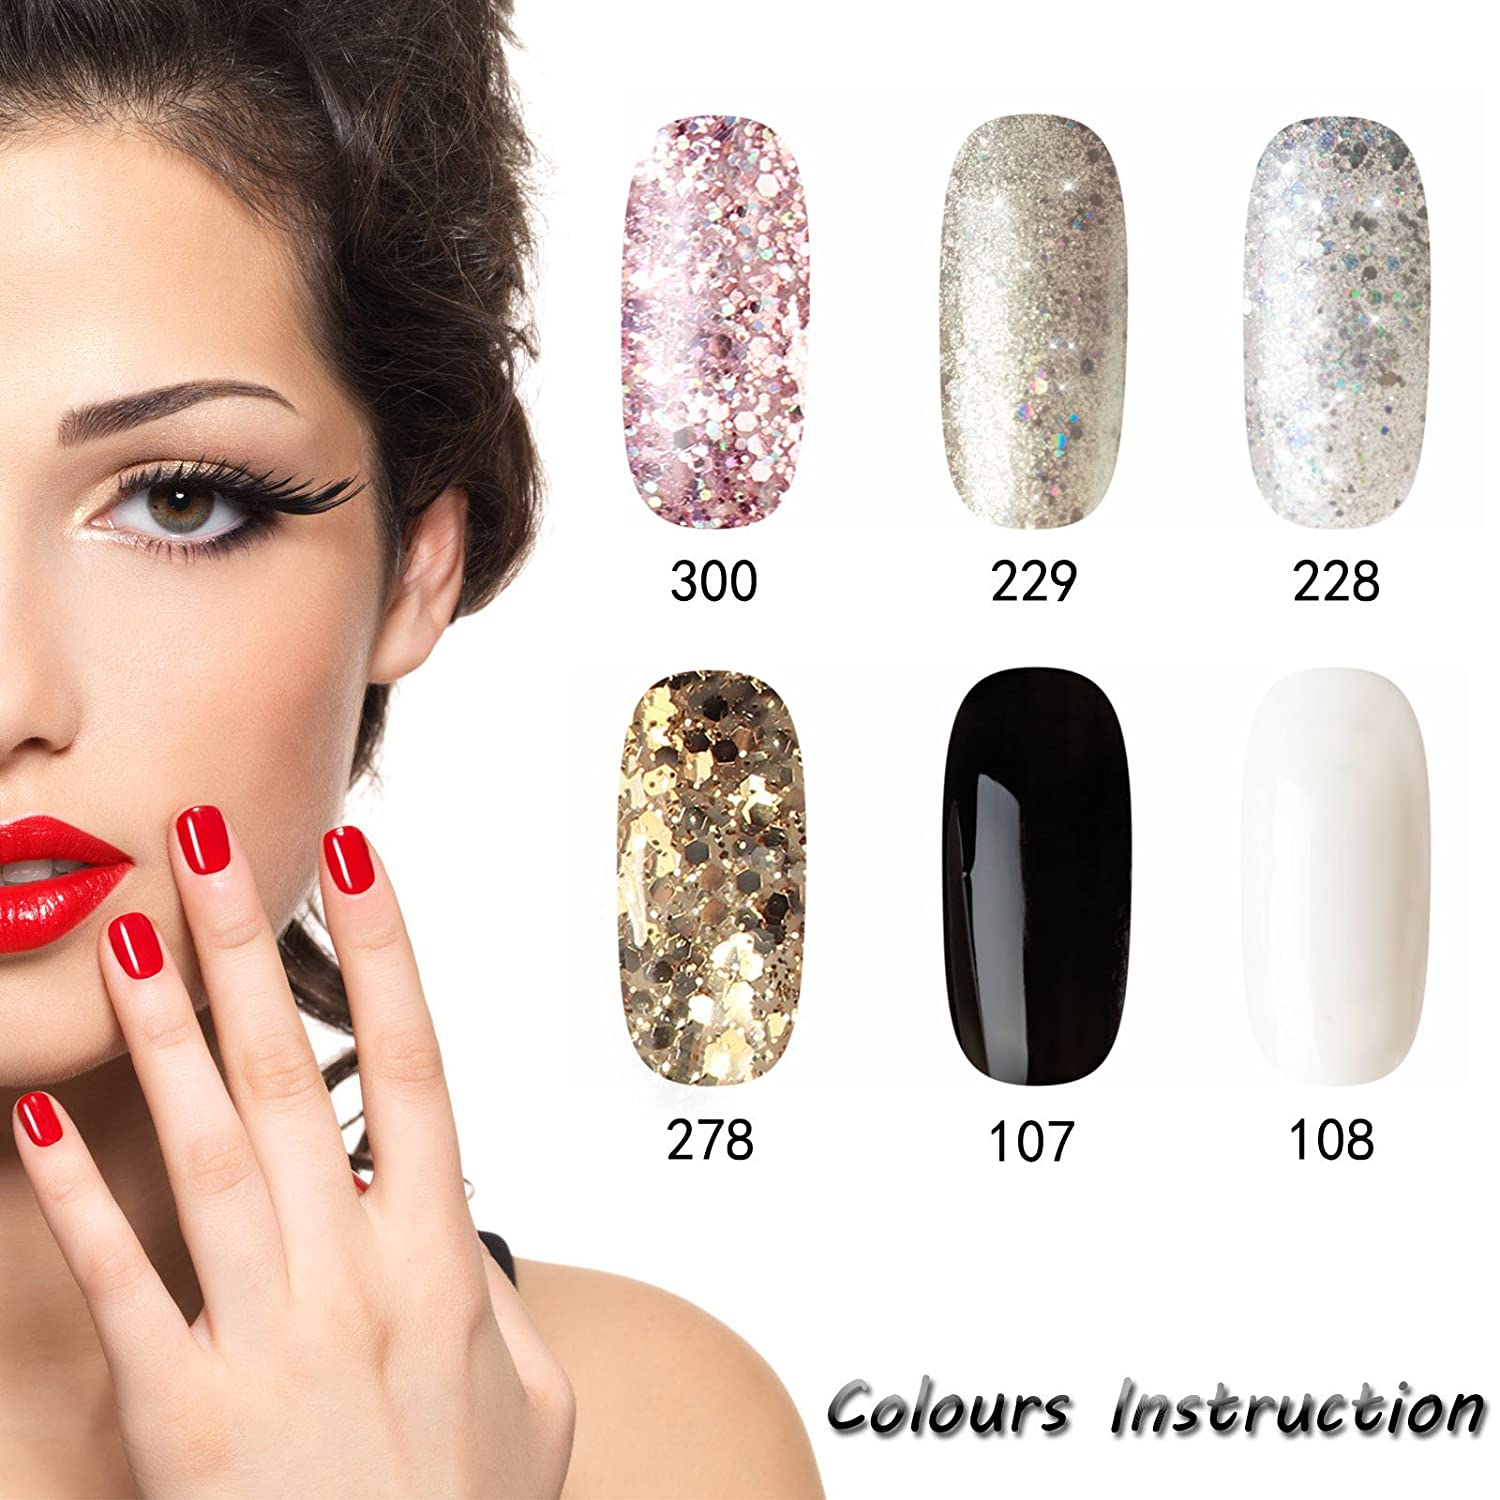 Y & S UV/LED Gel Nail Polish Sets Longwear Soak Off Gel de uñas con purpurina lavable a polaco barniz Manicura 8 ml - pack de 6: Amazon.es: Belleza